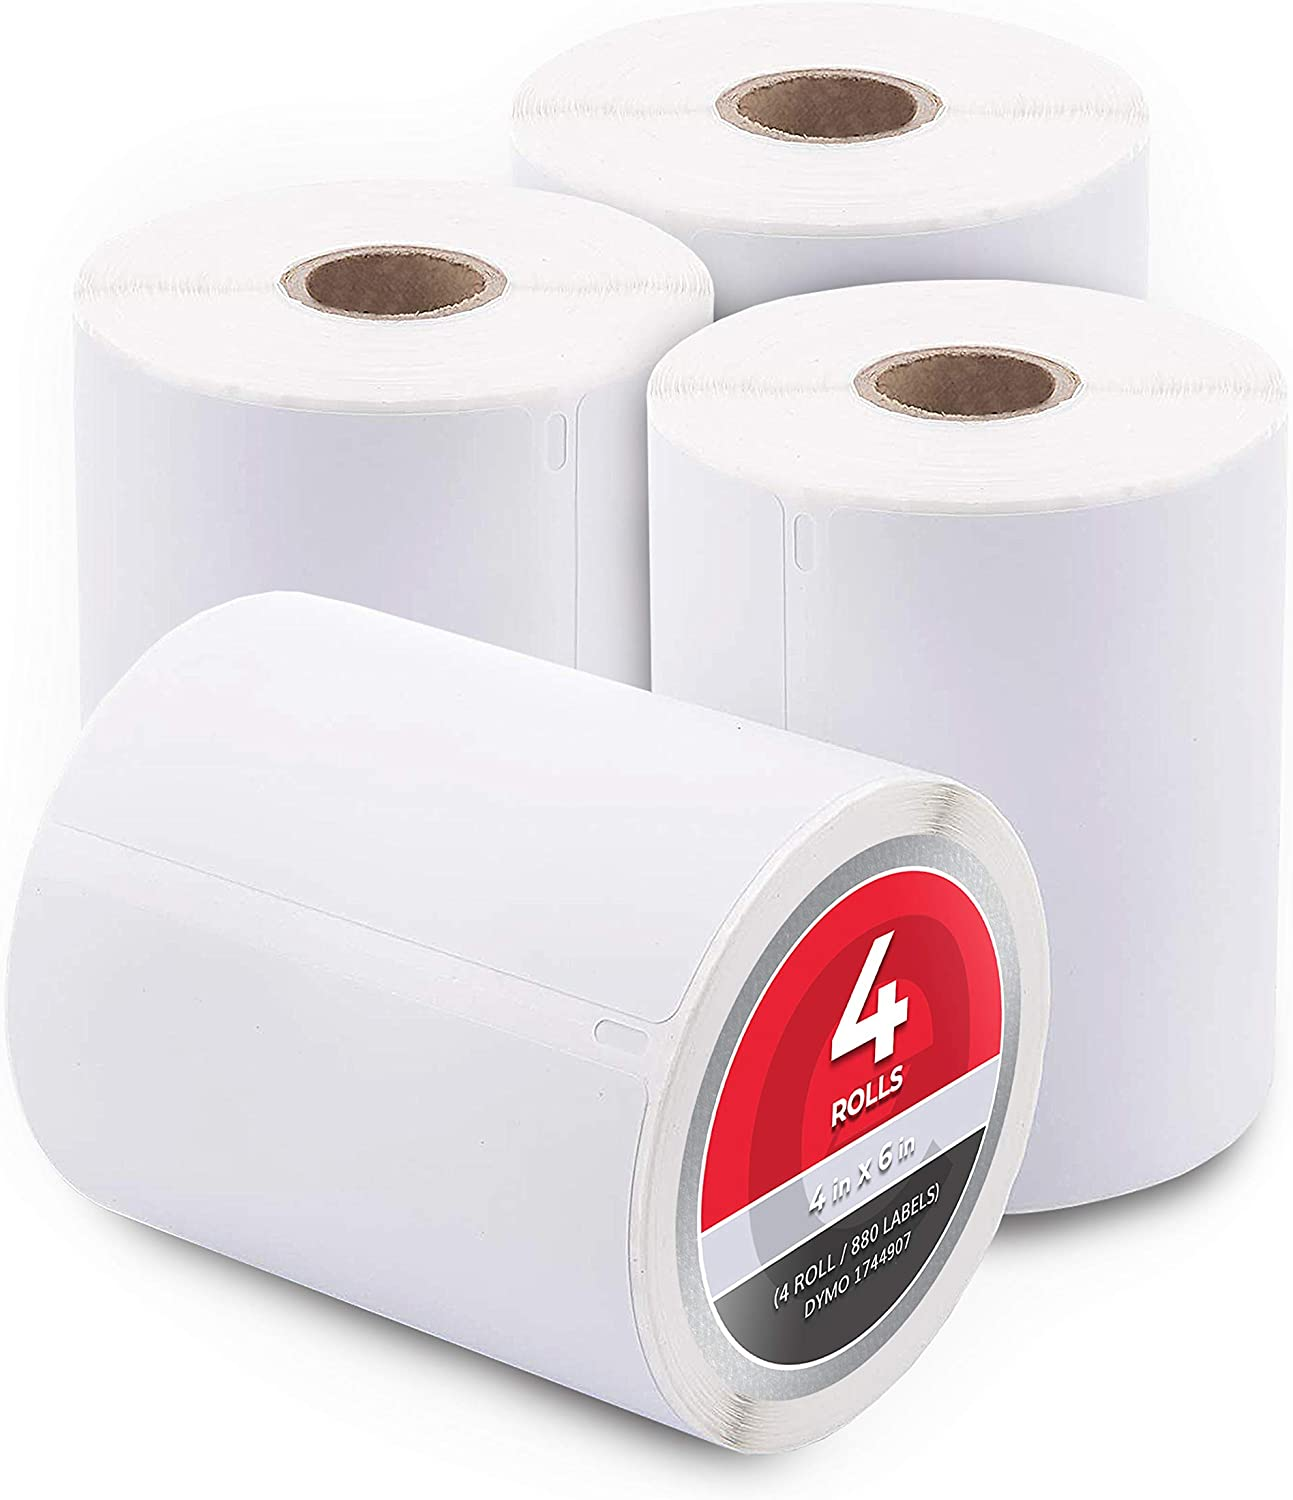 4 Rolls 4x6 Direct Thermal Shipping Labels Zebra 2844 ZP450 Eltron 350//roll